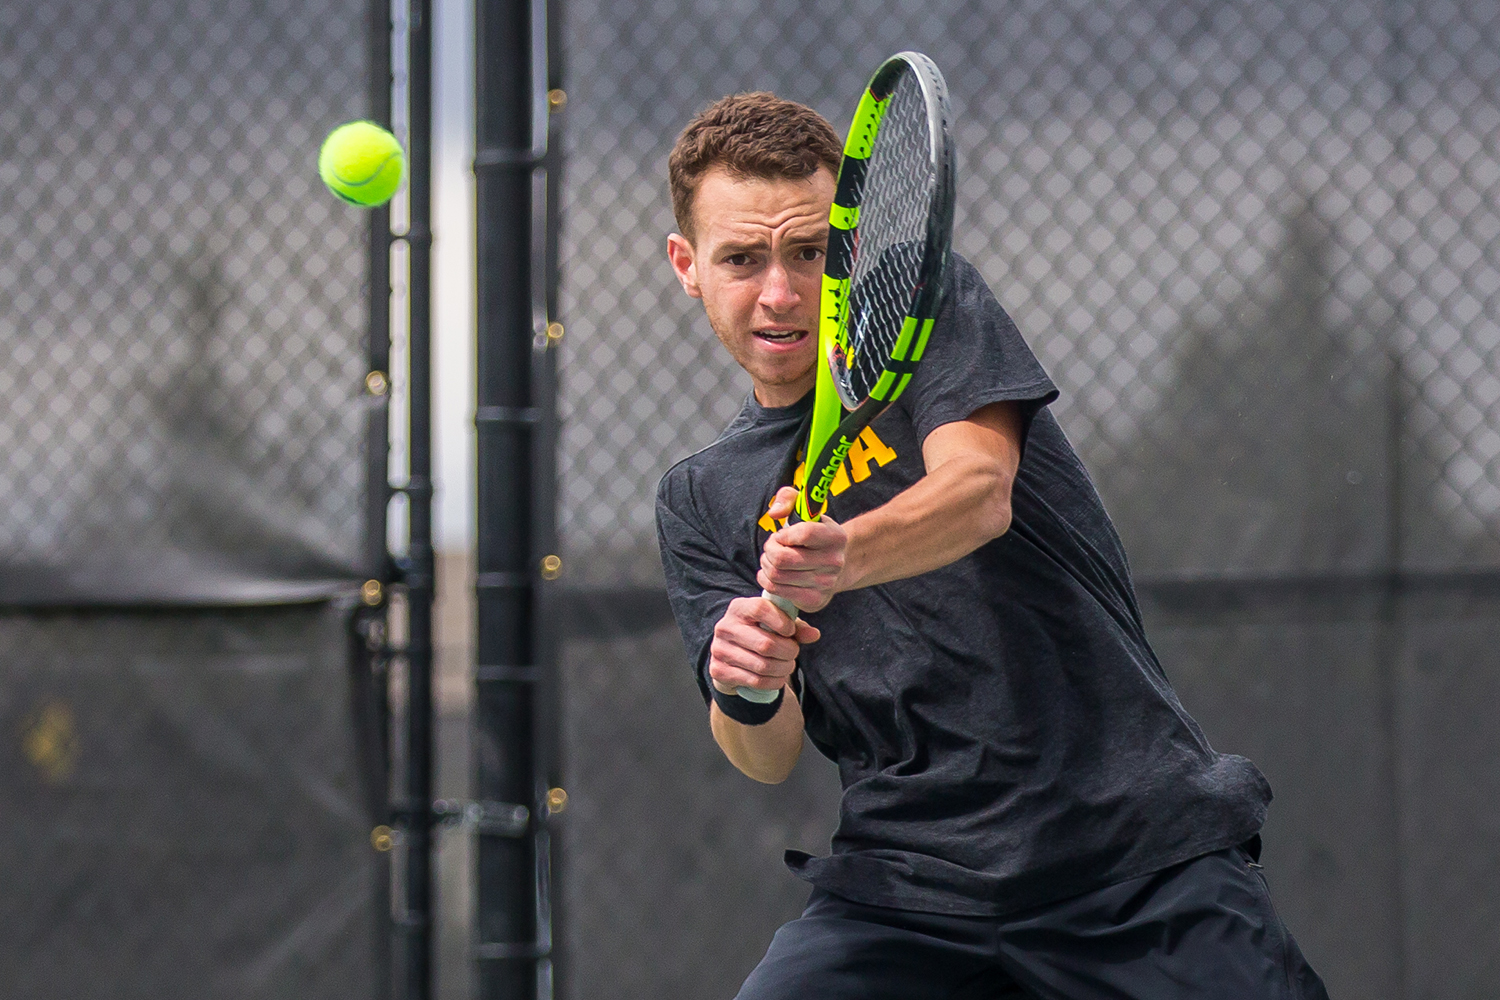 Iowa's Kareem Allaf hits a backhand during a men's tennis match between Iowa and Ohio State at the HTRC on Sunday, April 7, 2019. The Buckeyes defeated the Hawkeyes, 4-1.